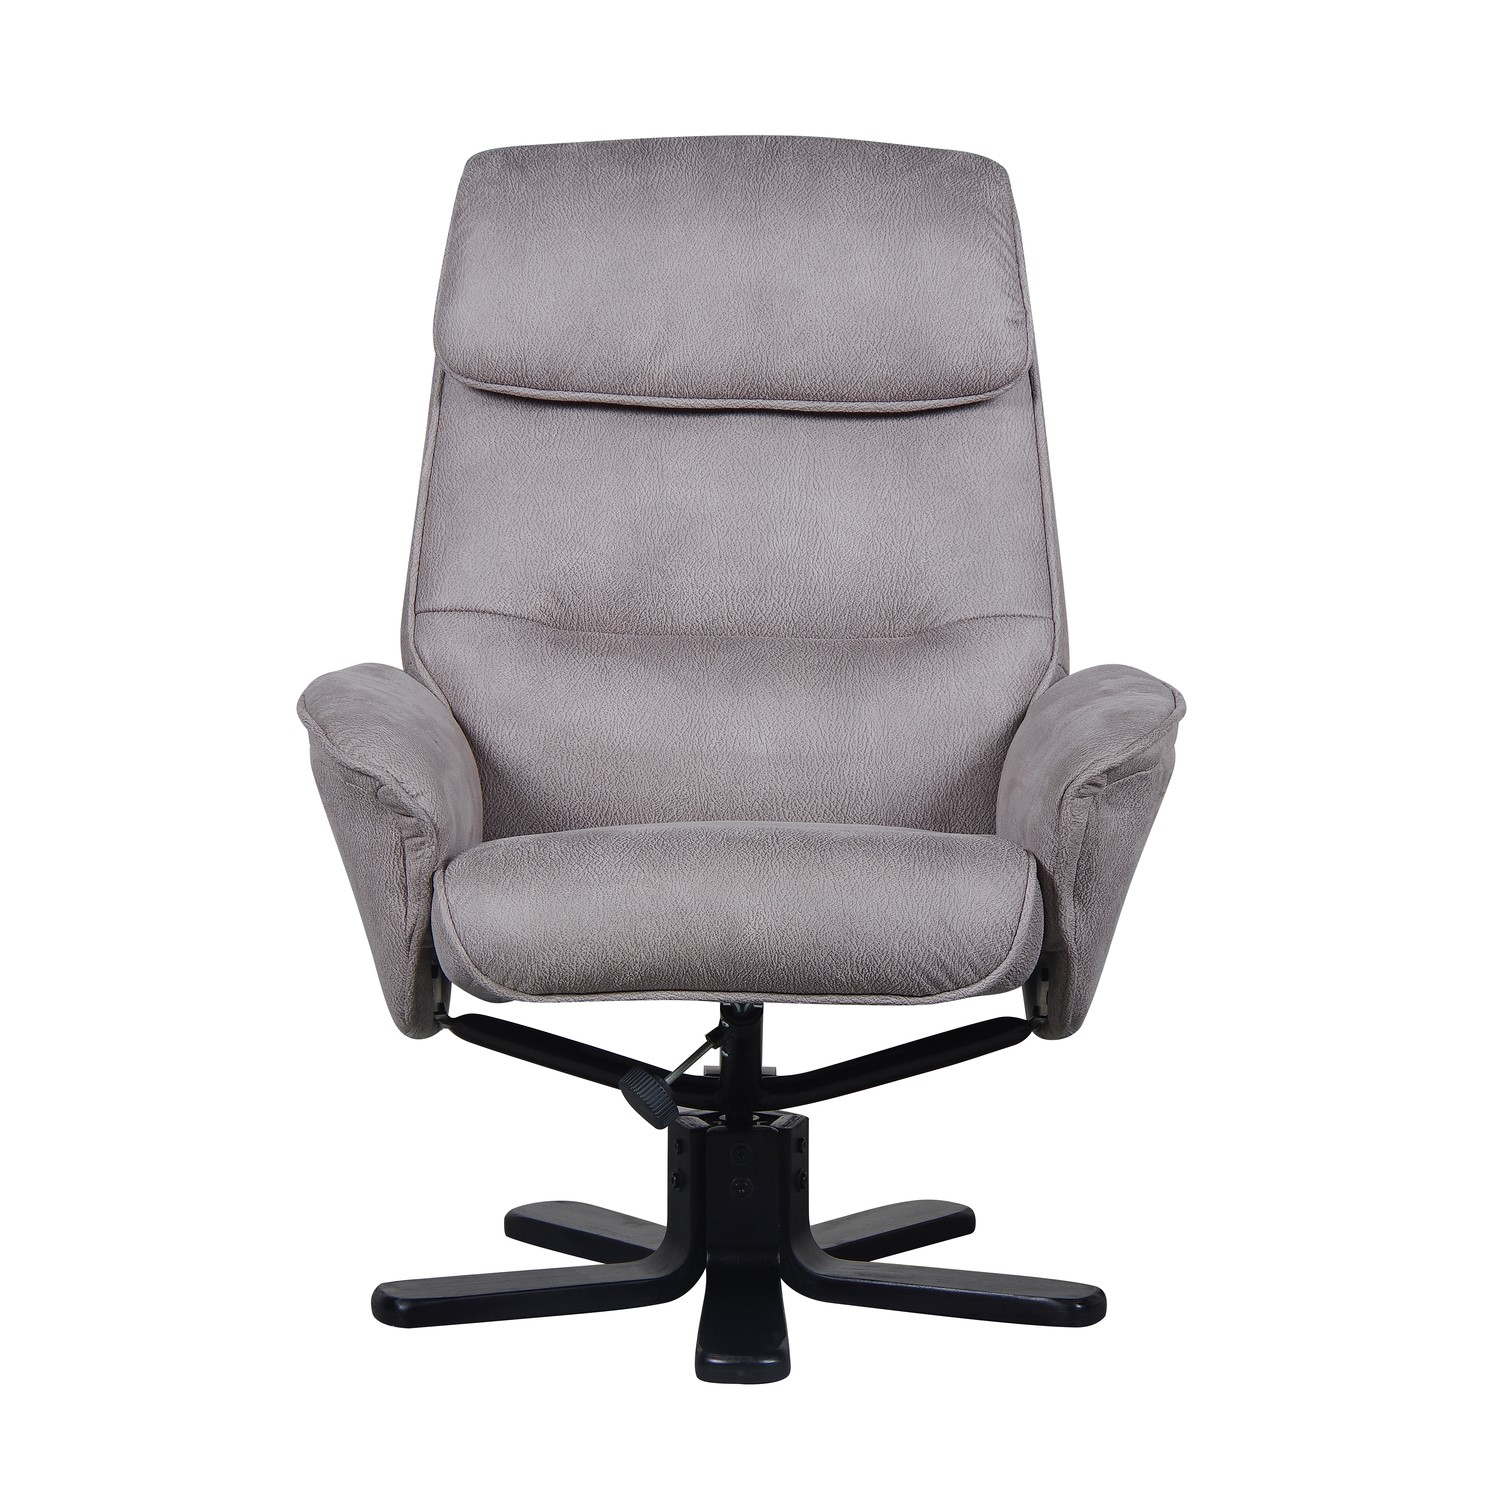 Fabulous Amalfi Swivel Recliner And Footstool In Grey Faux Suede Pabps2019 Chair Design Images Pabps2019Com